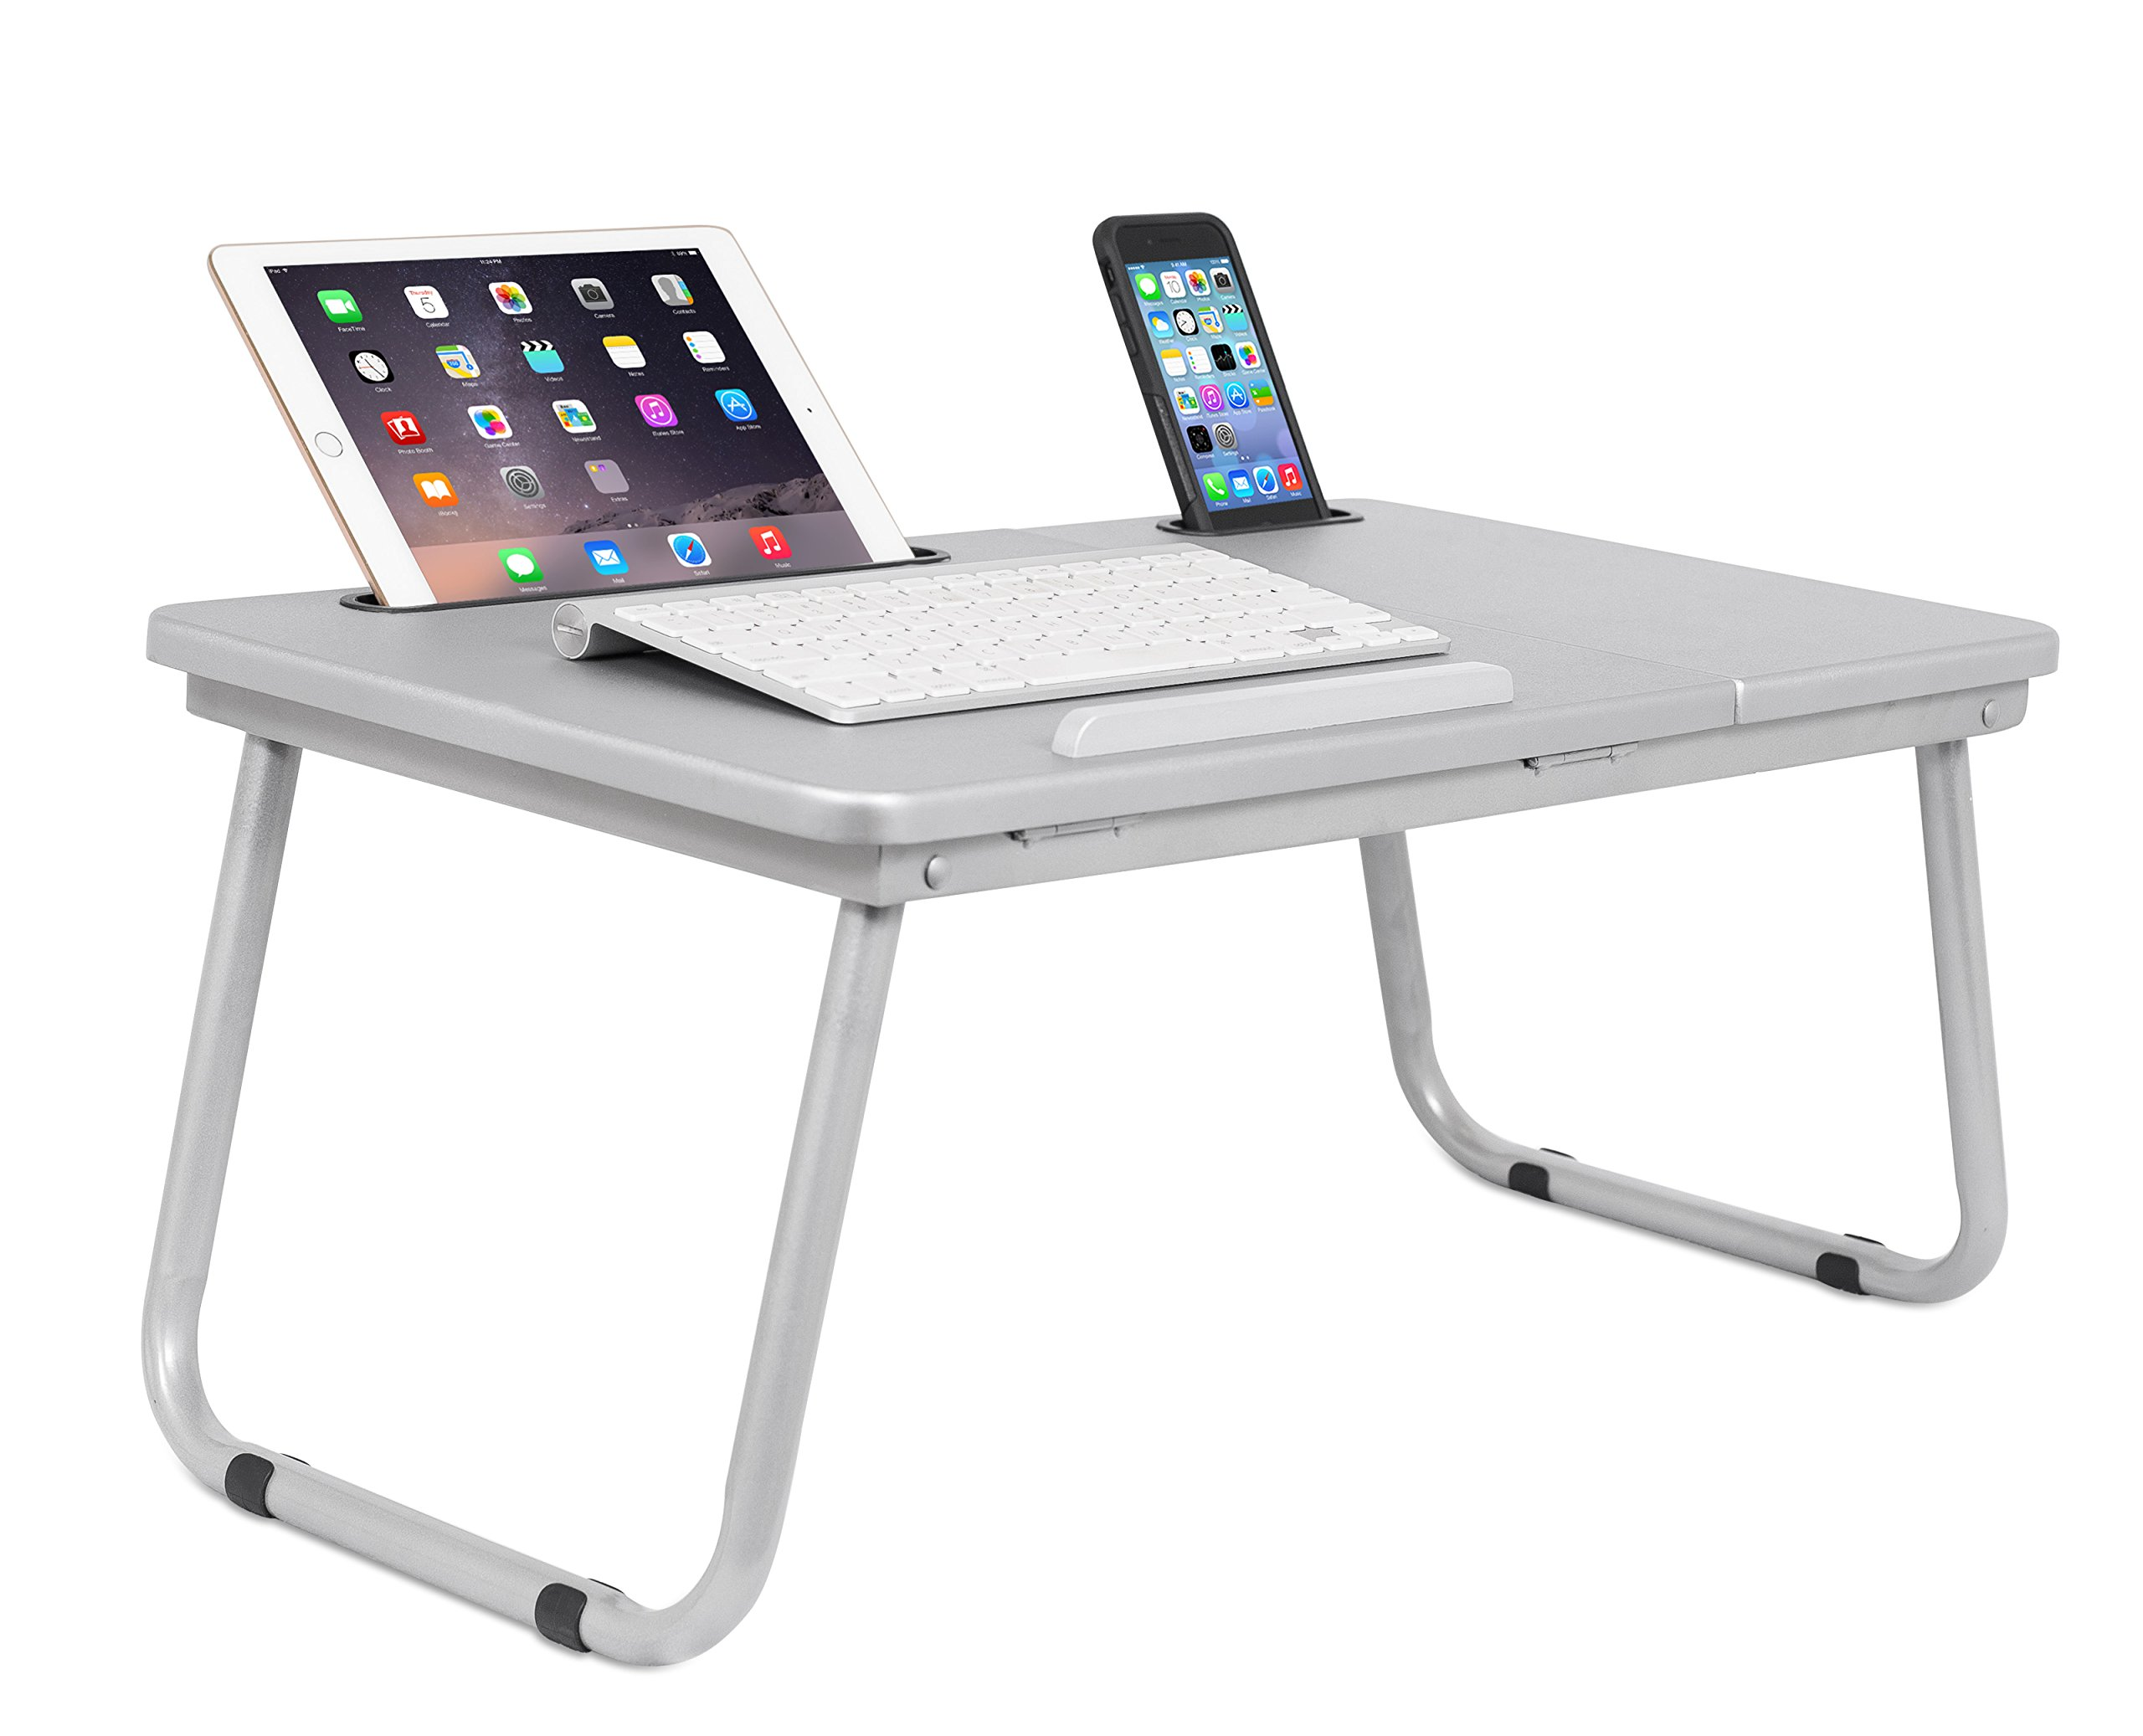 Sofia + Sam Lap Tray with Tablet & Phone Slots | Metal Folding Legs | Lap Desk with Tilting Top | Laptop Stand | Breakfast Serving Bed Tray | Grey